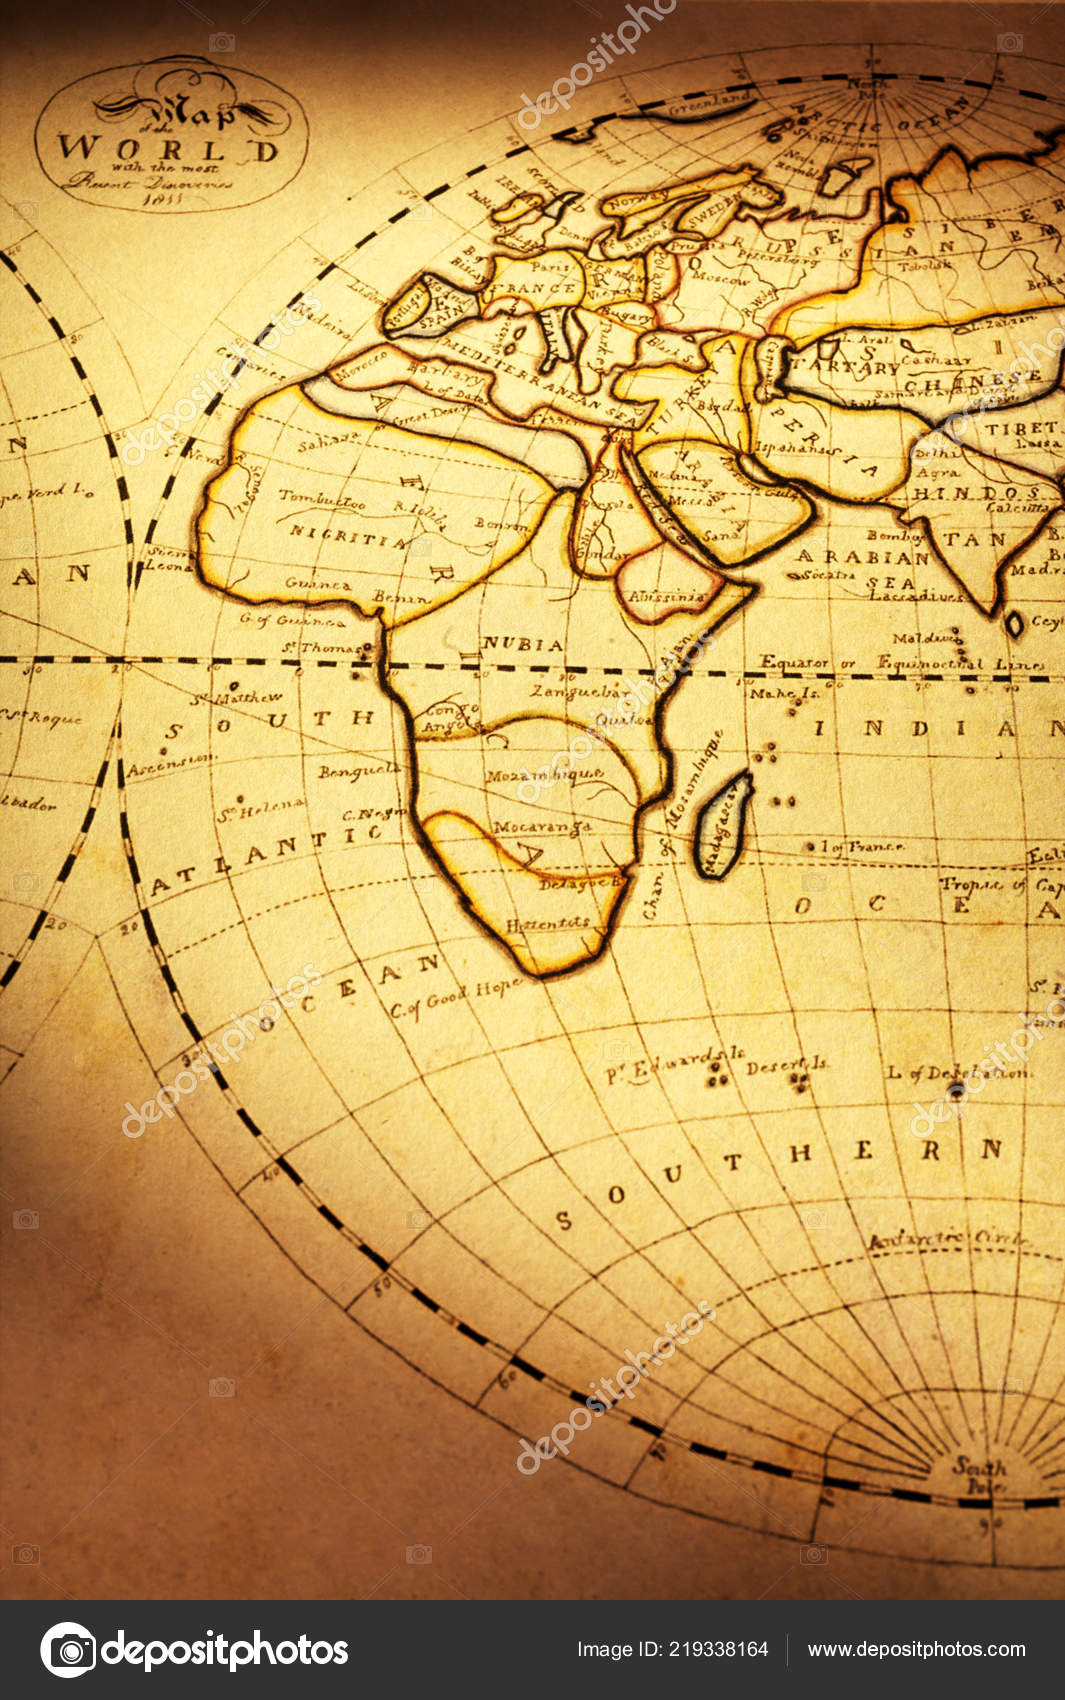 old world map of africa Old World Map Vintage Stock Photo C Travellinglight 219338164 old world map of africa